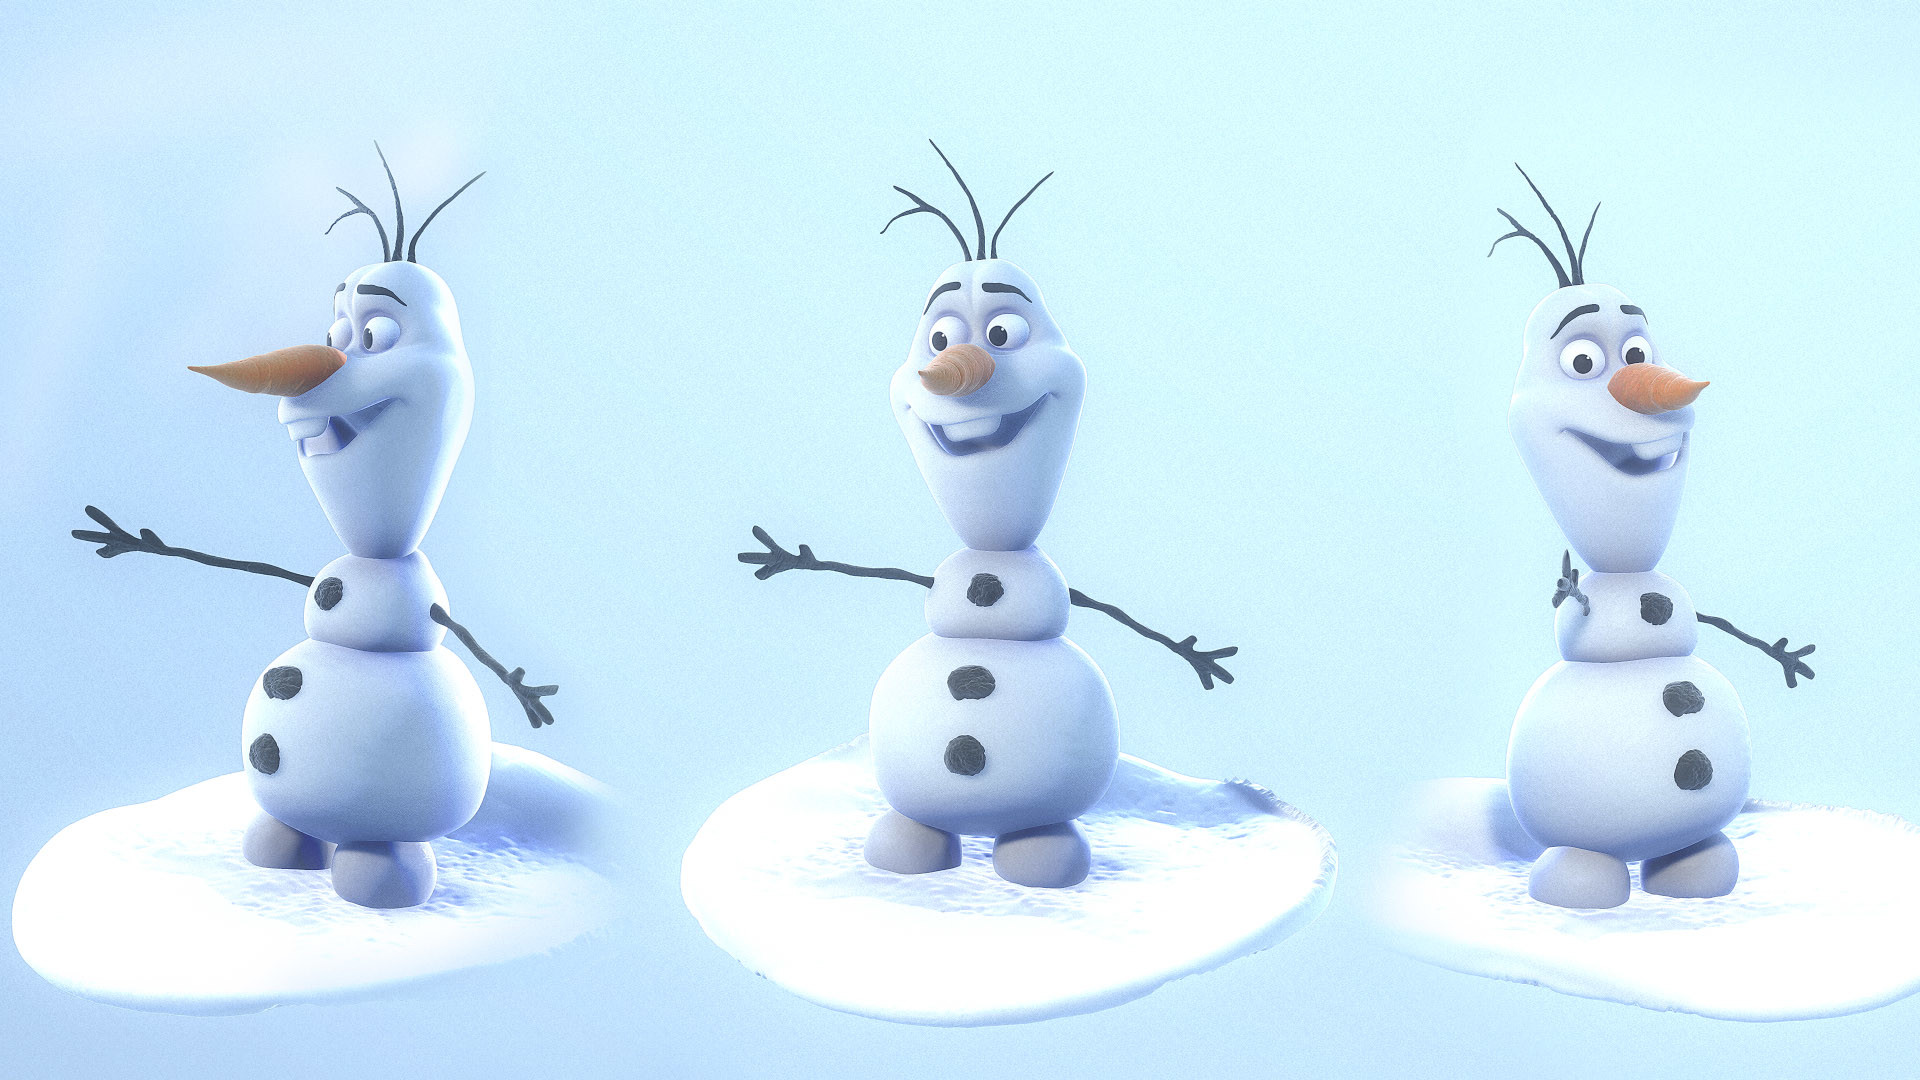 Res: 1920x1080, Cute Olaf Wallpapers,  - By Katherina Hokanson